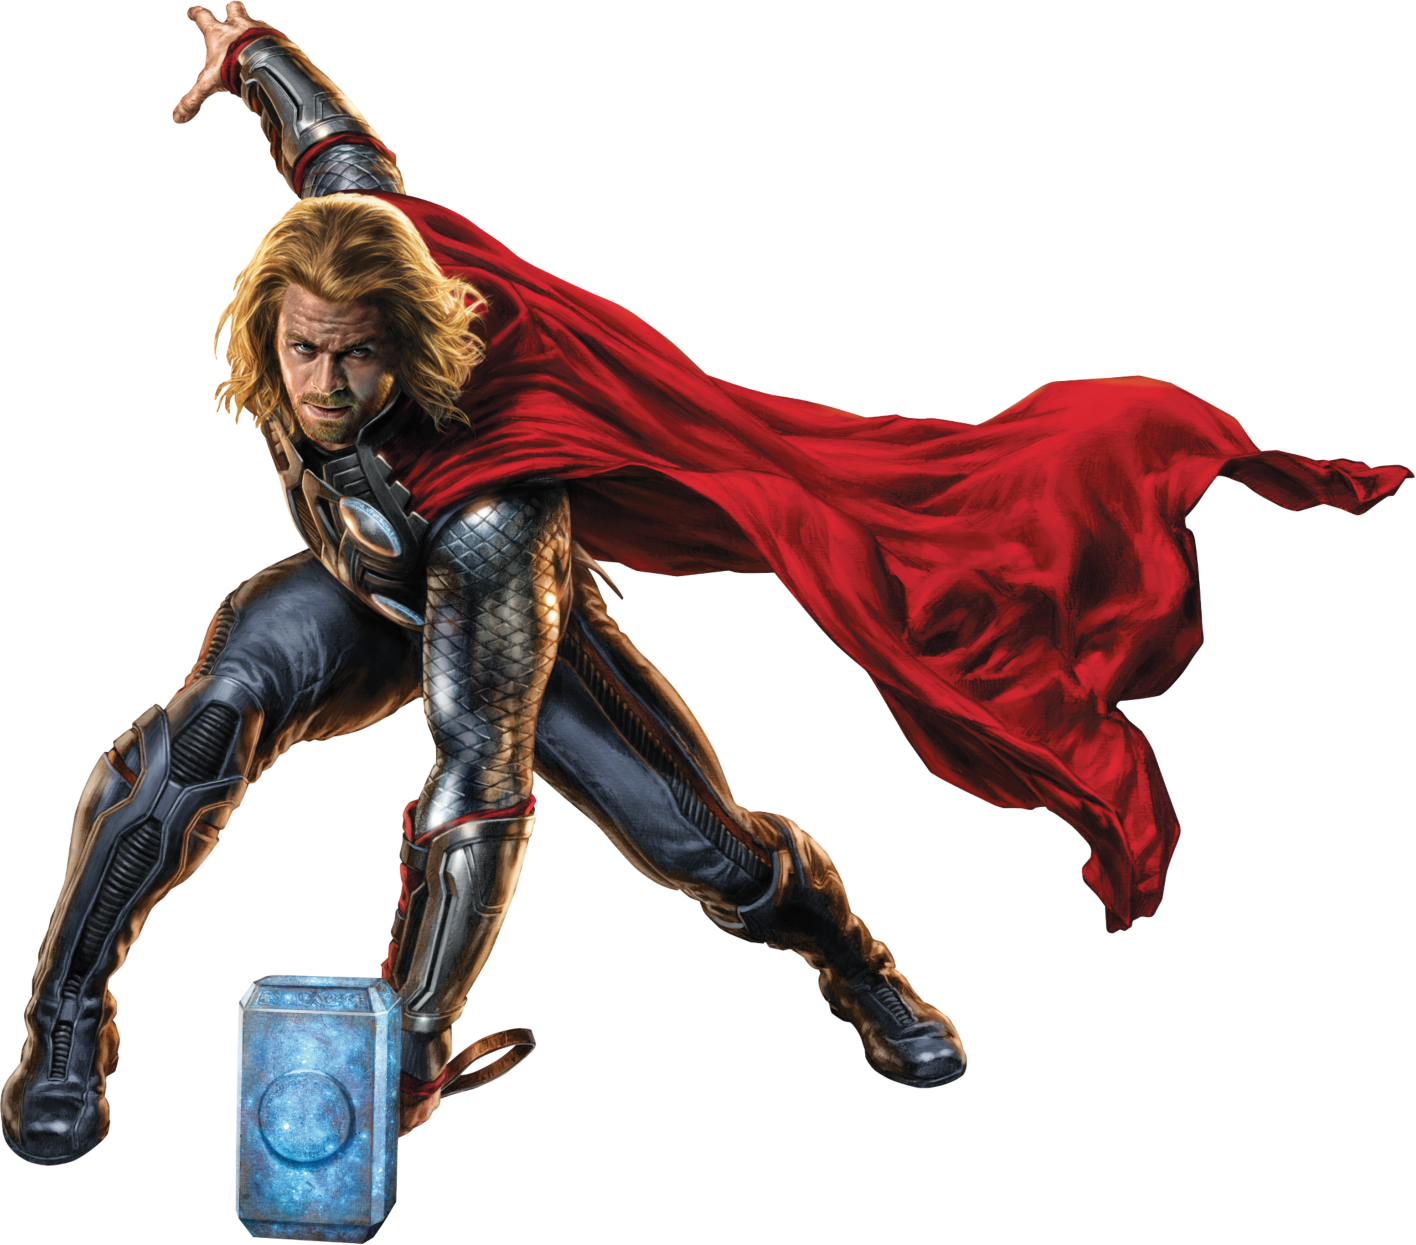 Thor 2 Avengers FH.png - Avengers PNG